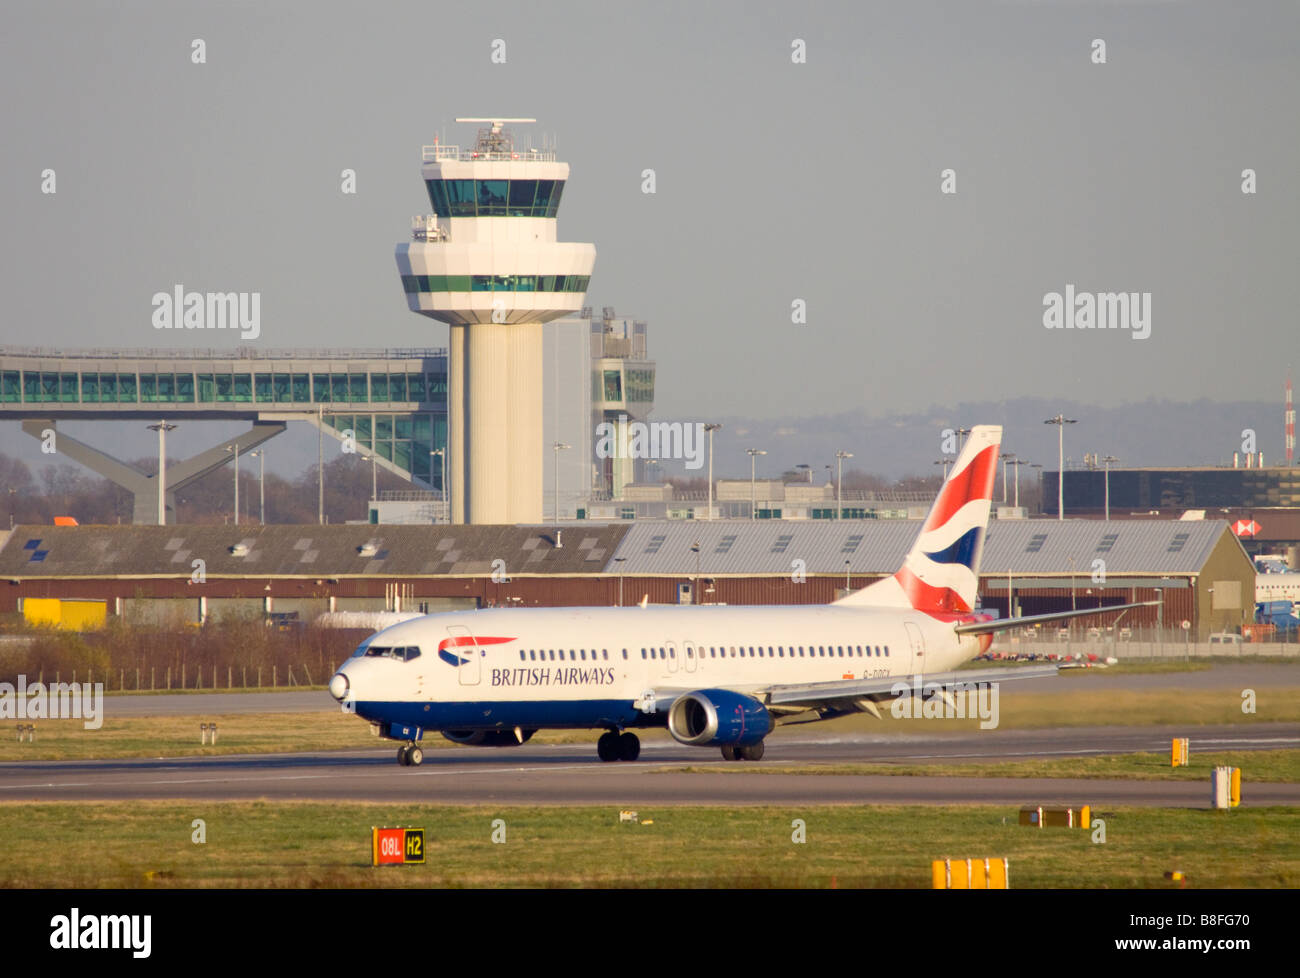 British Airways Boeing 737 436 taxing after landing at London Gatwick Airport. - Stock Image